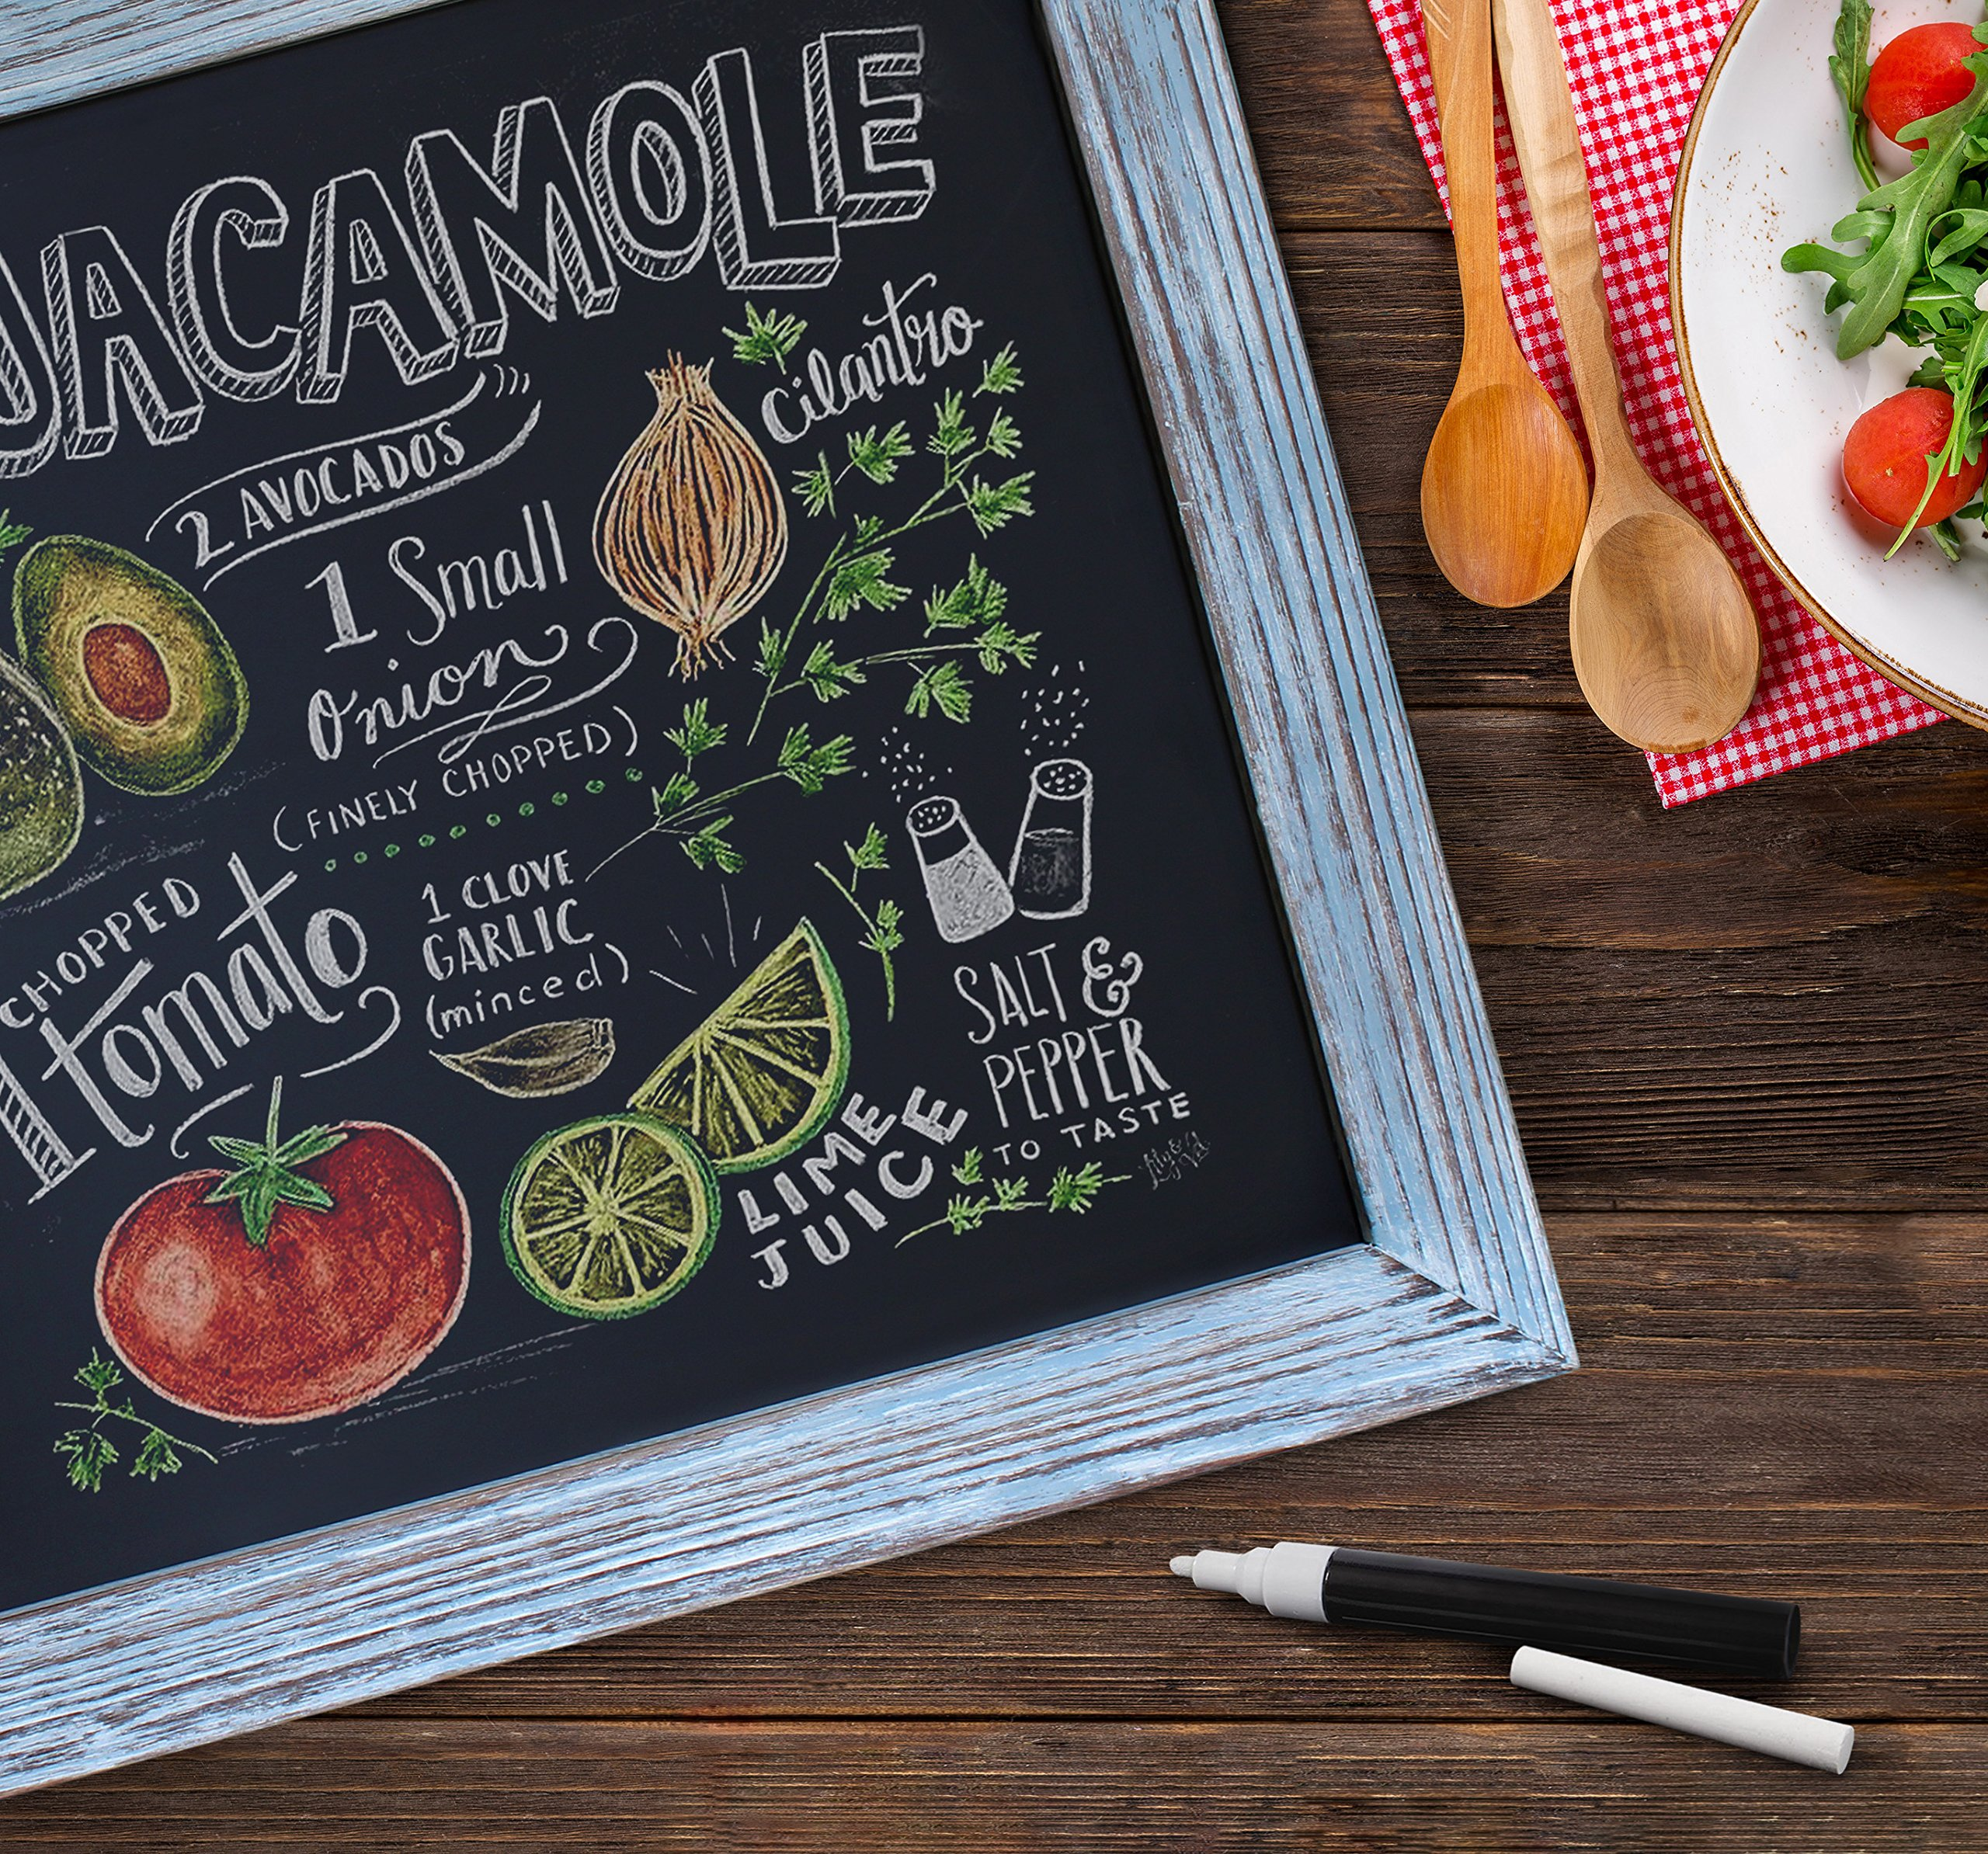 Rustic Blue Magnetic Wall Chalkboard, Extra Large Size 20'' x 30'', Framed Decorative Chalkboard - Great for Kitchen Decor, Weddings, Restaurant Menus and More! … (20''x30'') by HBCY Creations (Image #5)